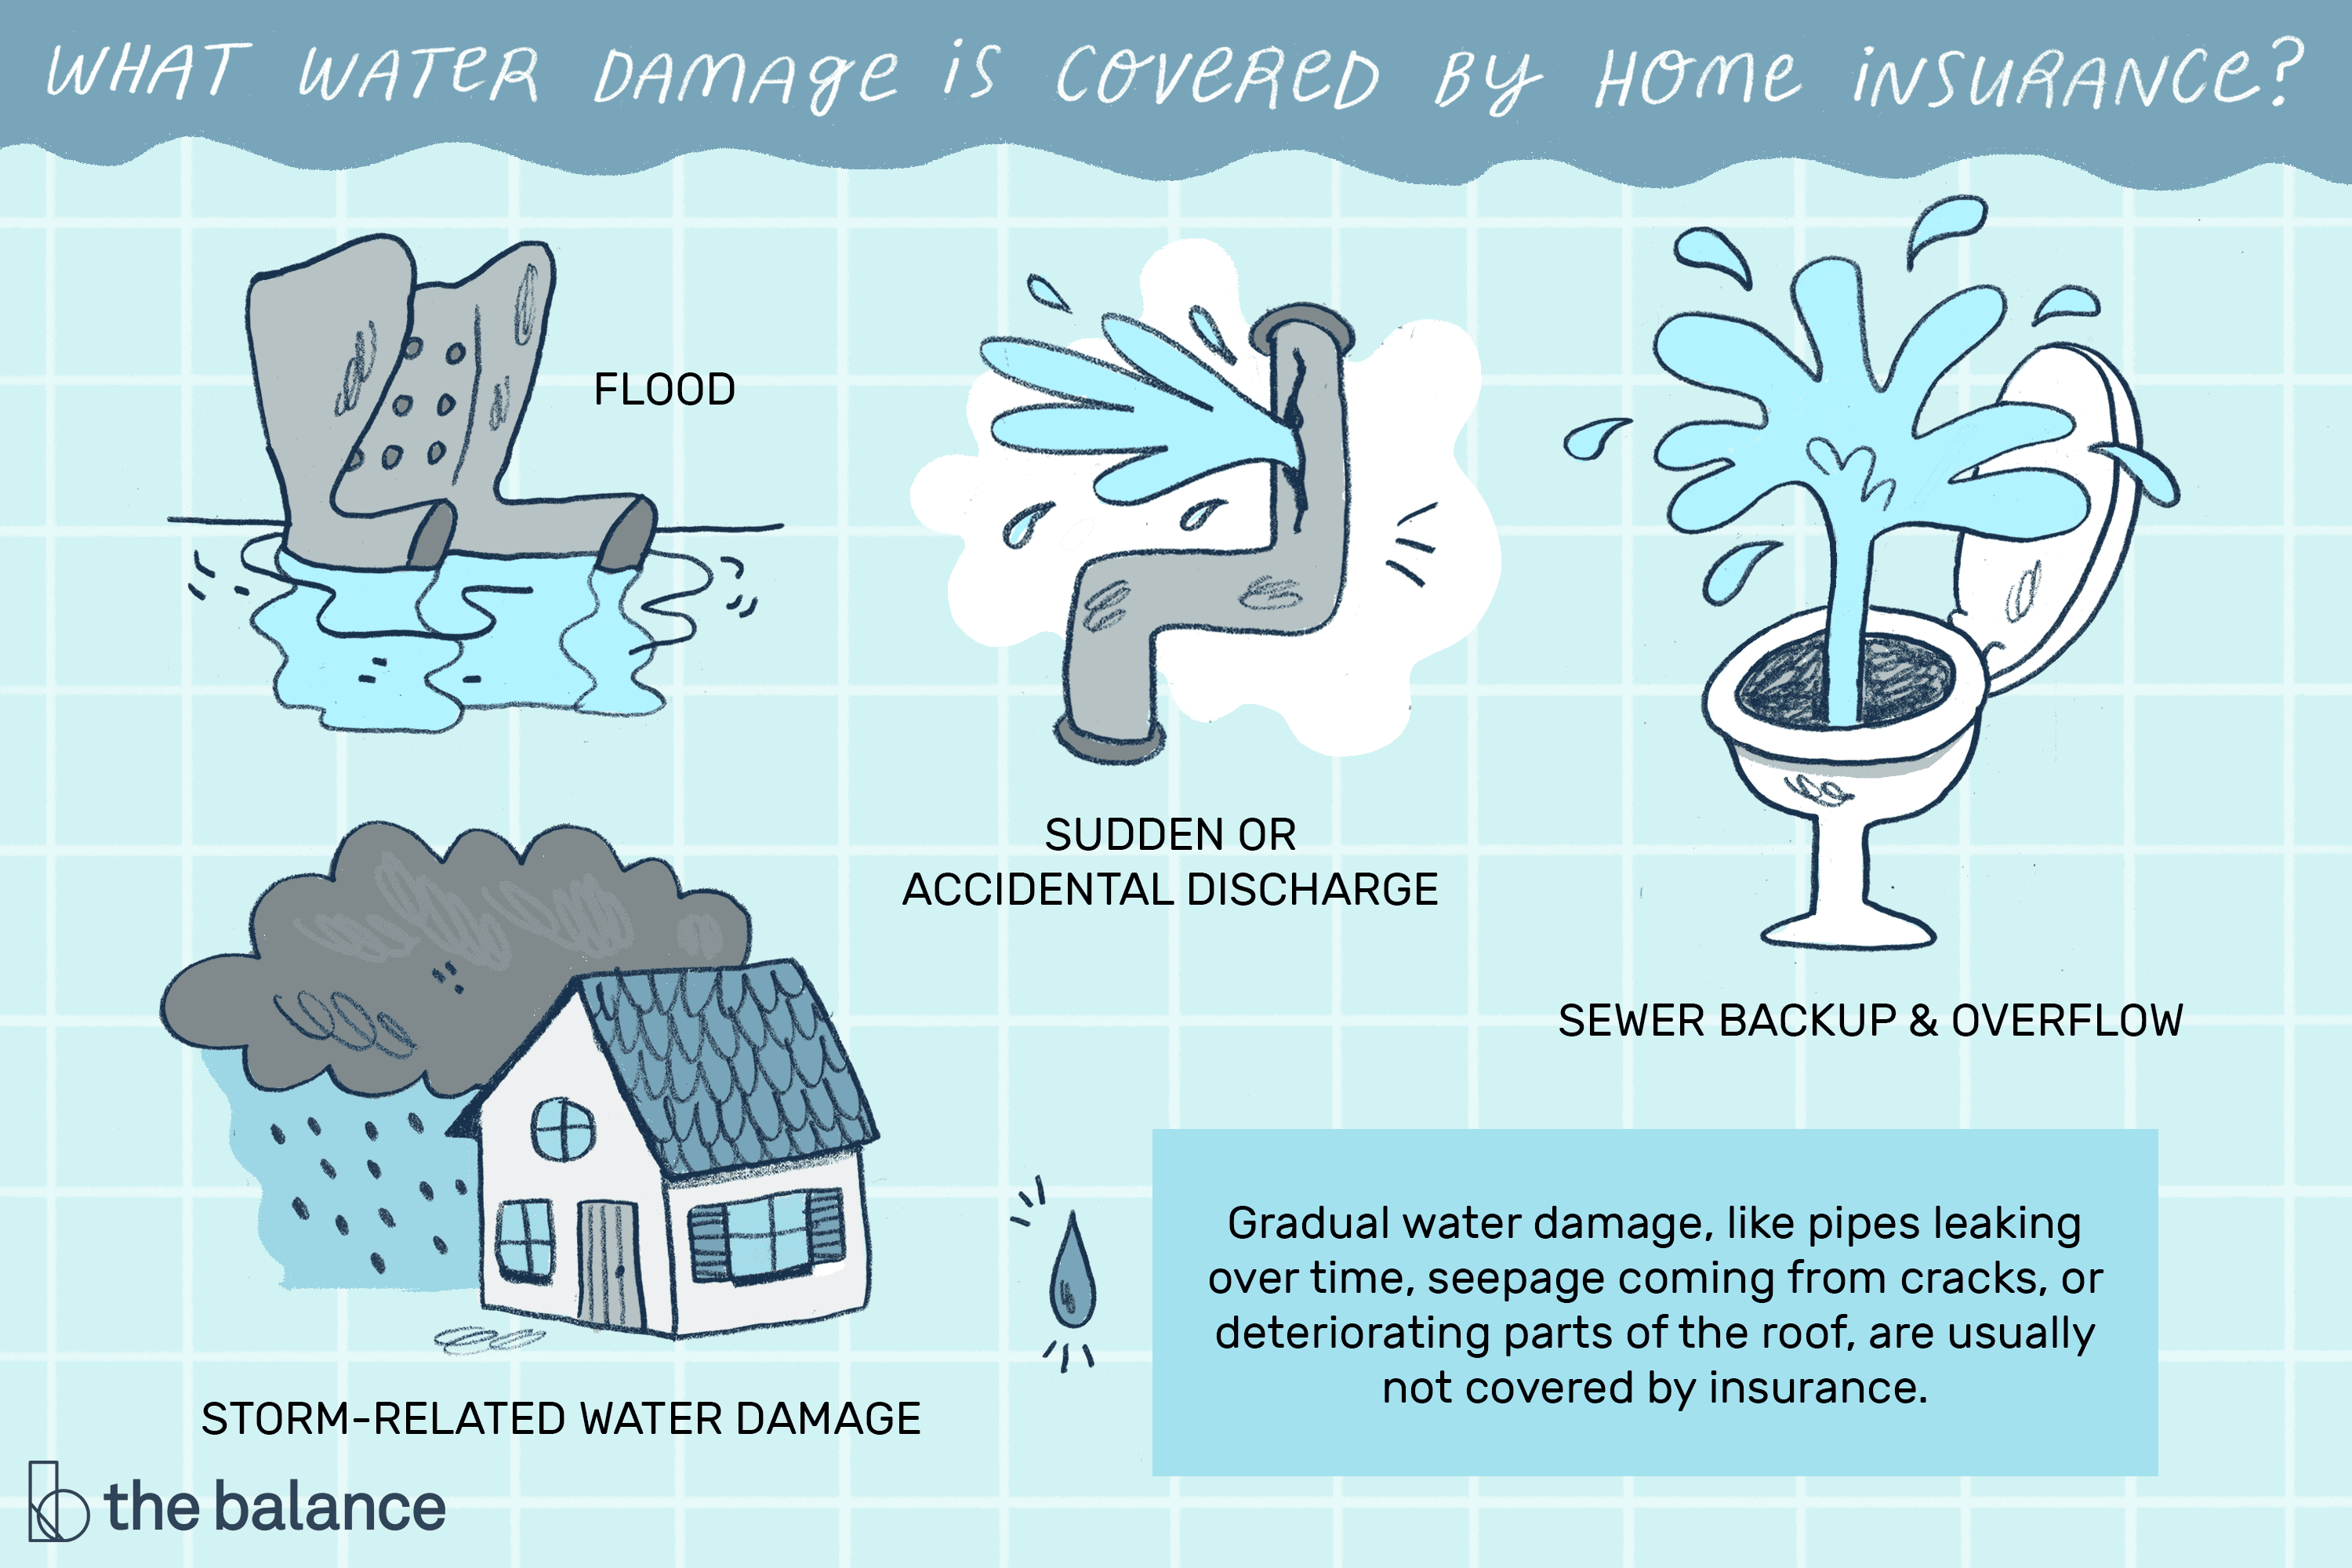 Common Questions What Water Damage Is Covered By Home Insurance